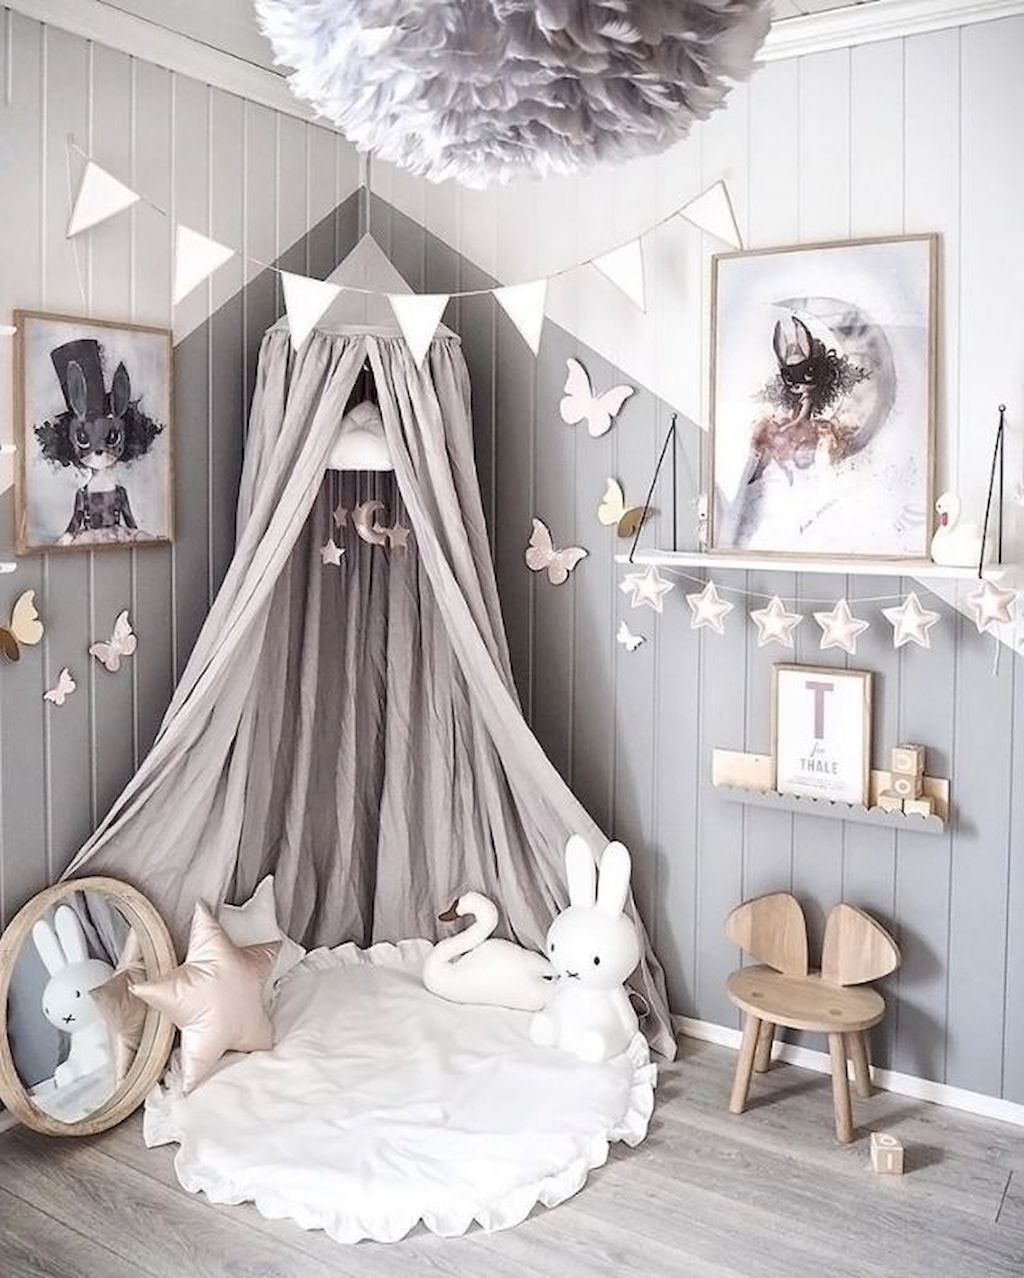 pin by cardiologibtbdaybdiet on kids room decorating in 2019 girl rh pinterest com